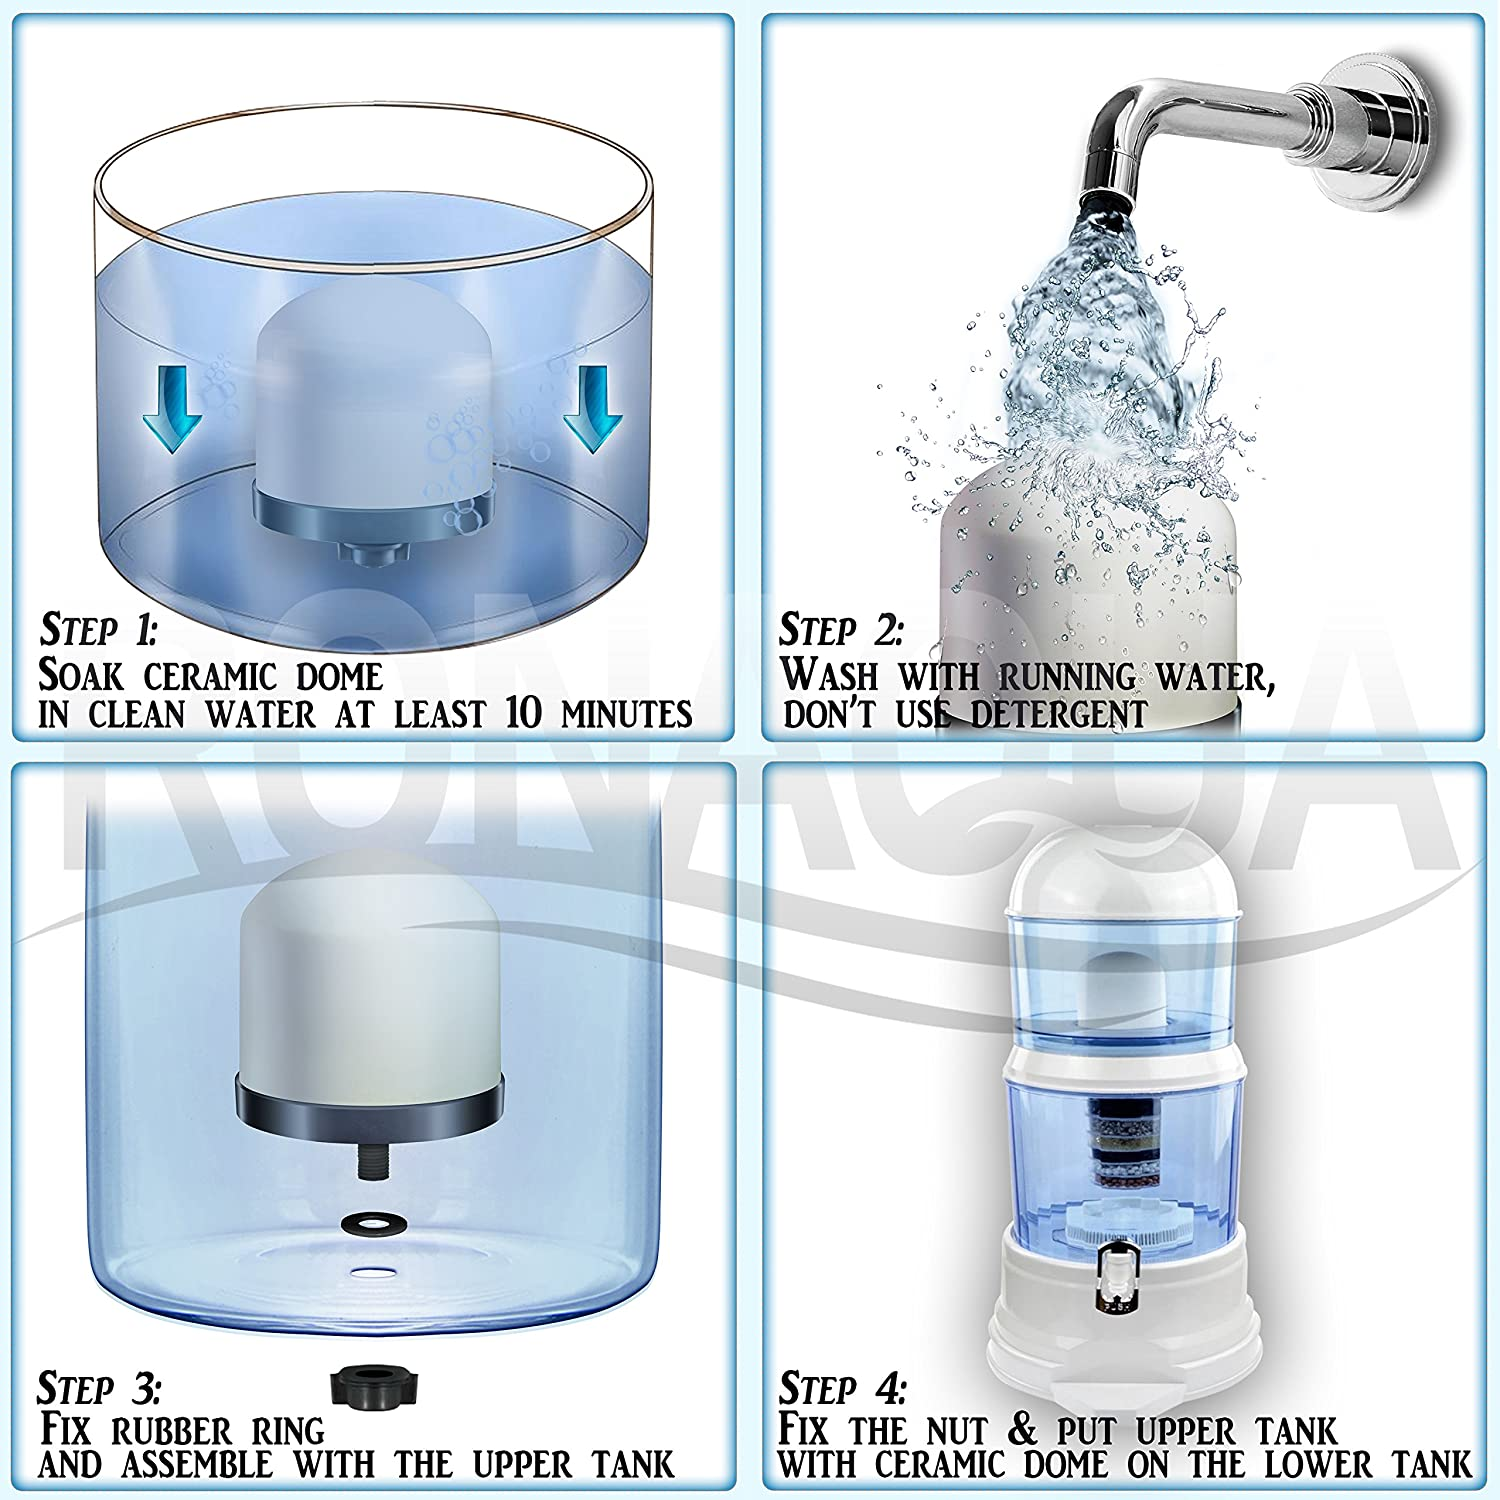 Replacement Ceramic Dome Water Filter 0.2 to 0.5 micron for Zen Countertop & Water Coolers. First Stage of Filtration, Traps all Impurities: Kitchen & Dining